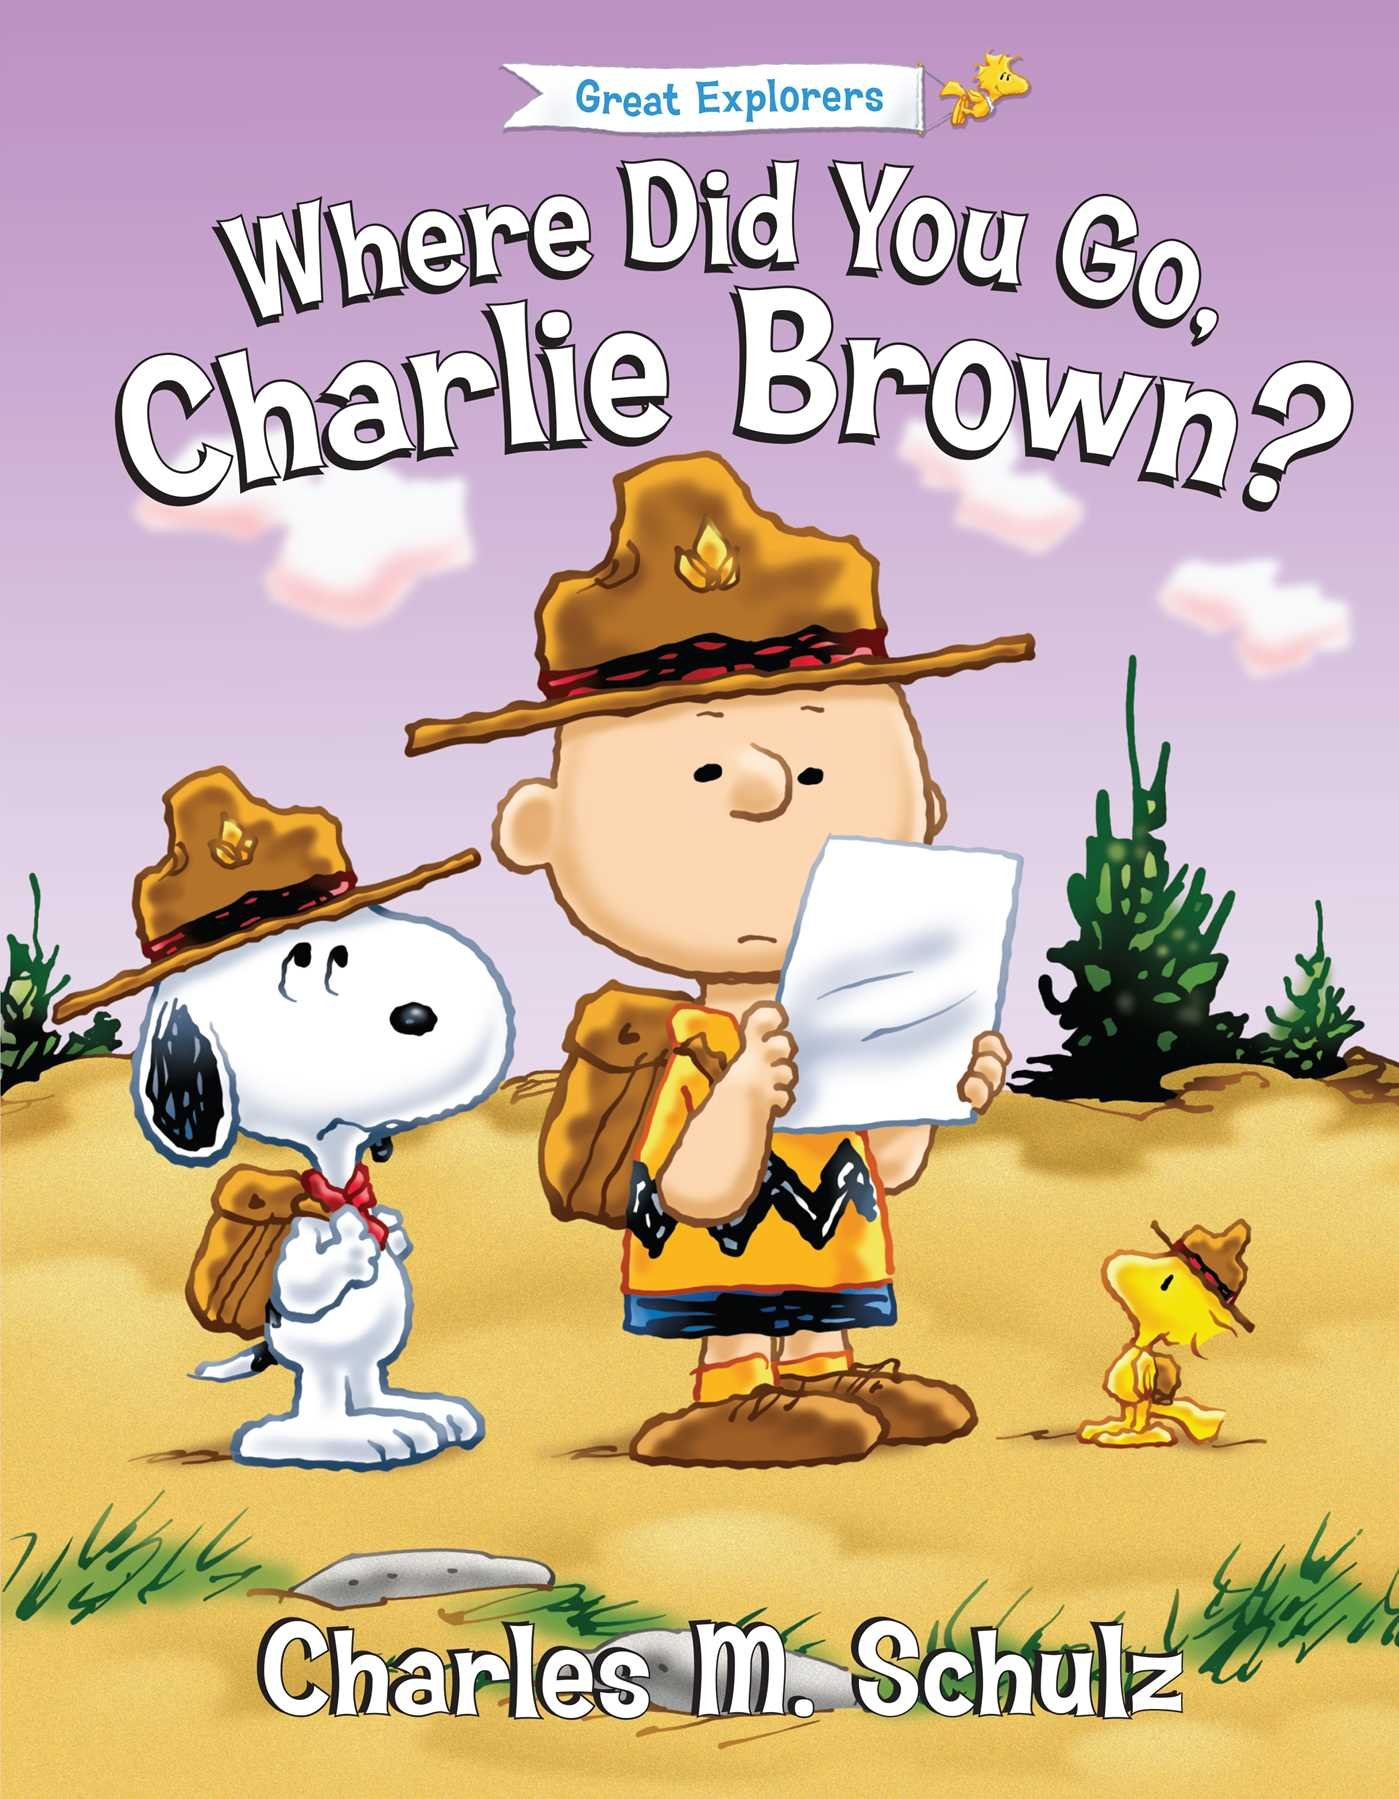 Where Did You Go Charlie Brown? (Peanuts Great American Adventure)